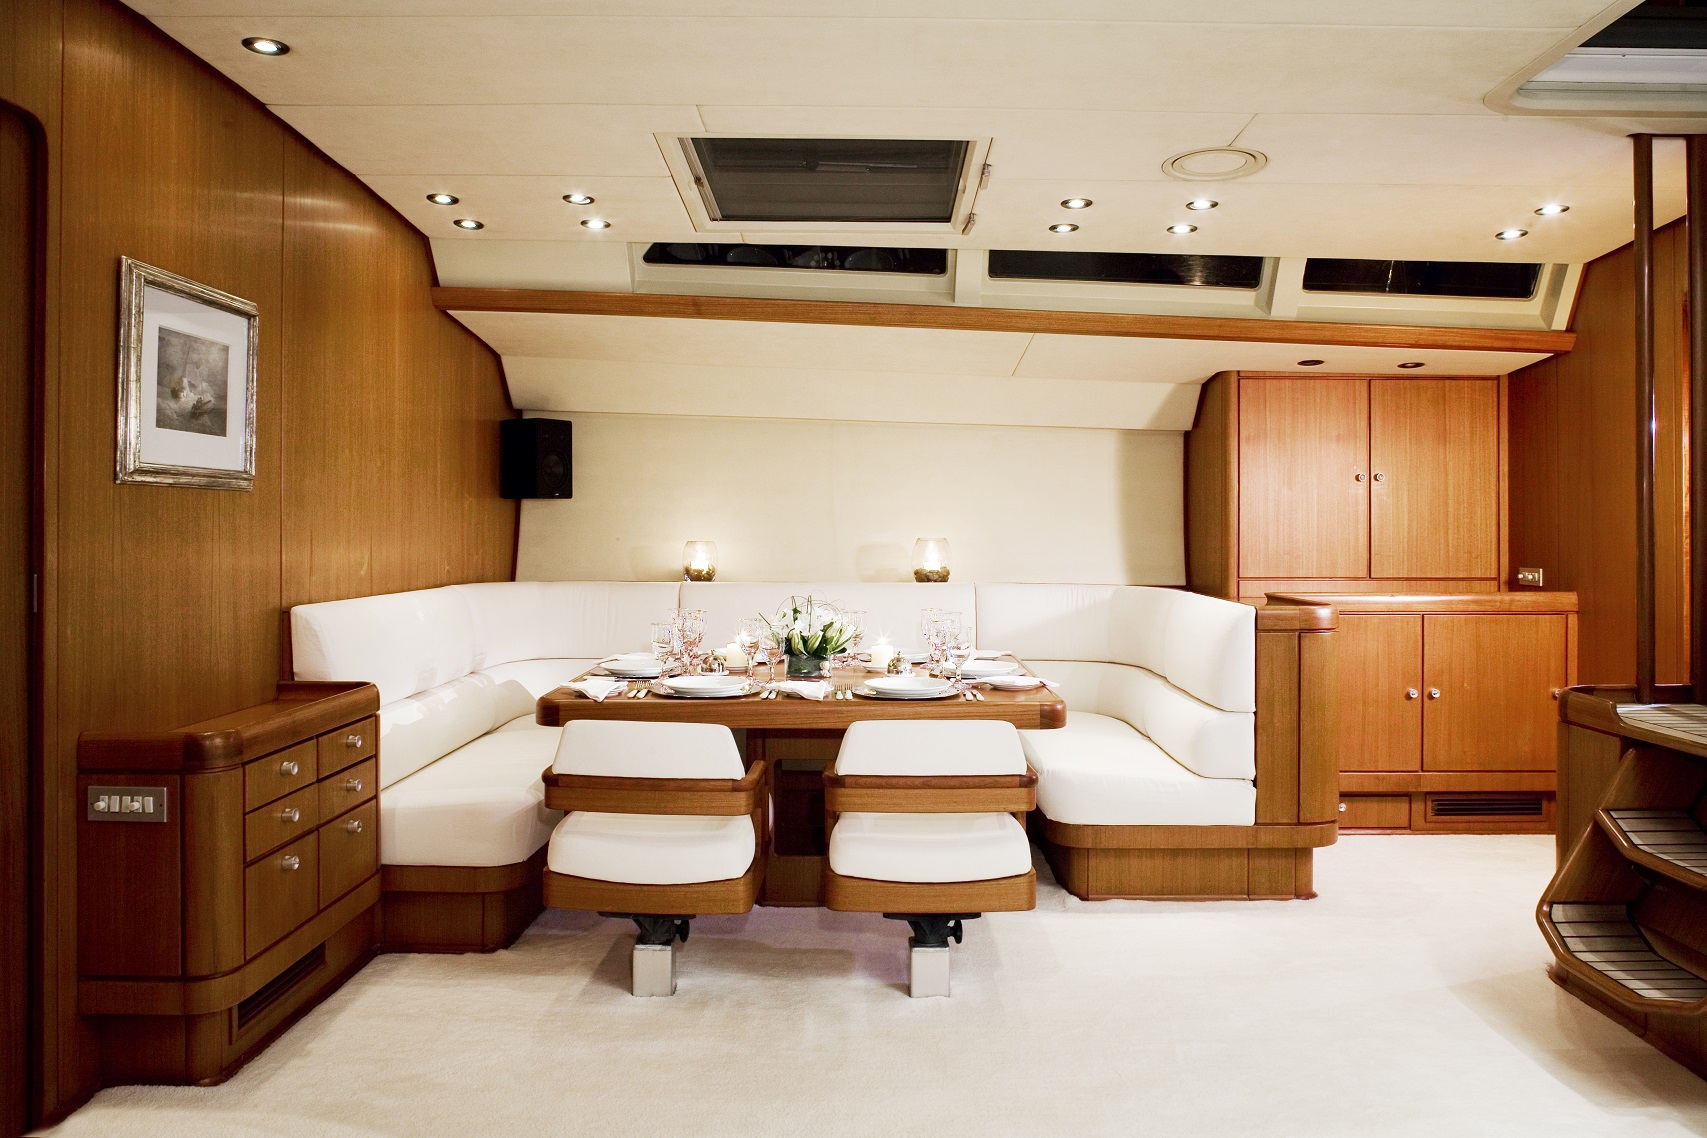 S/Y CYCLOS II yacht for charter dining area